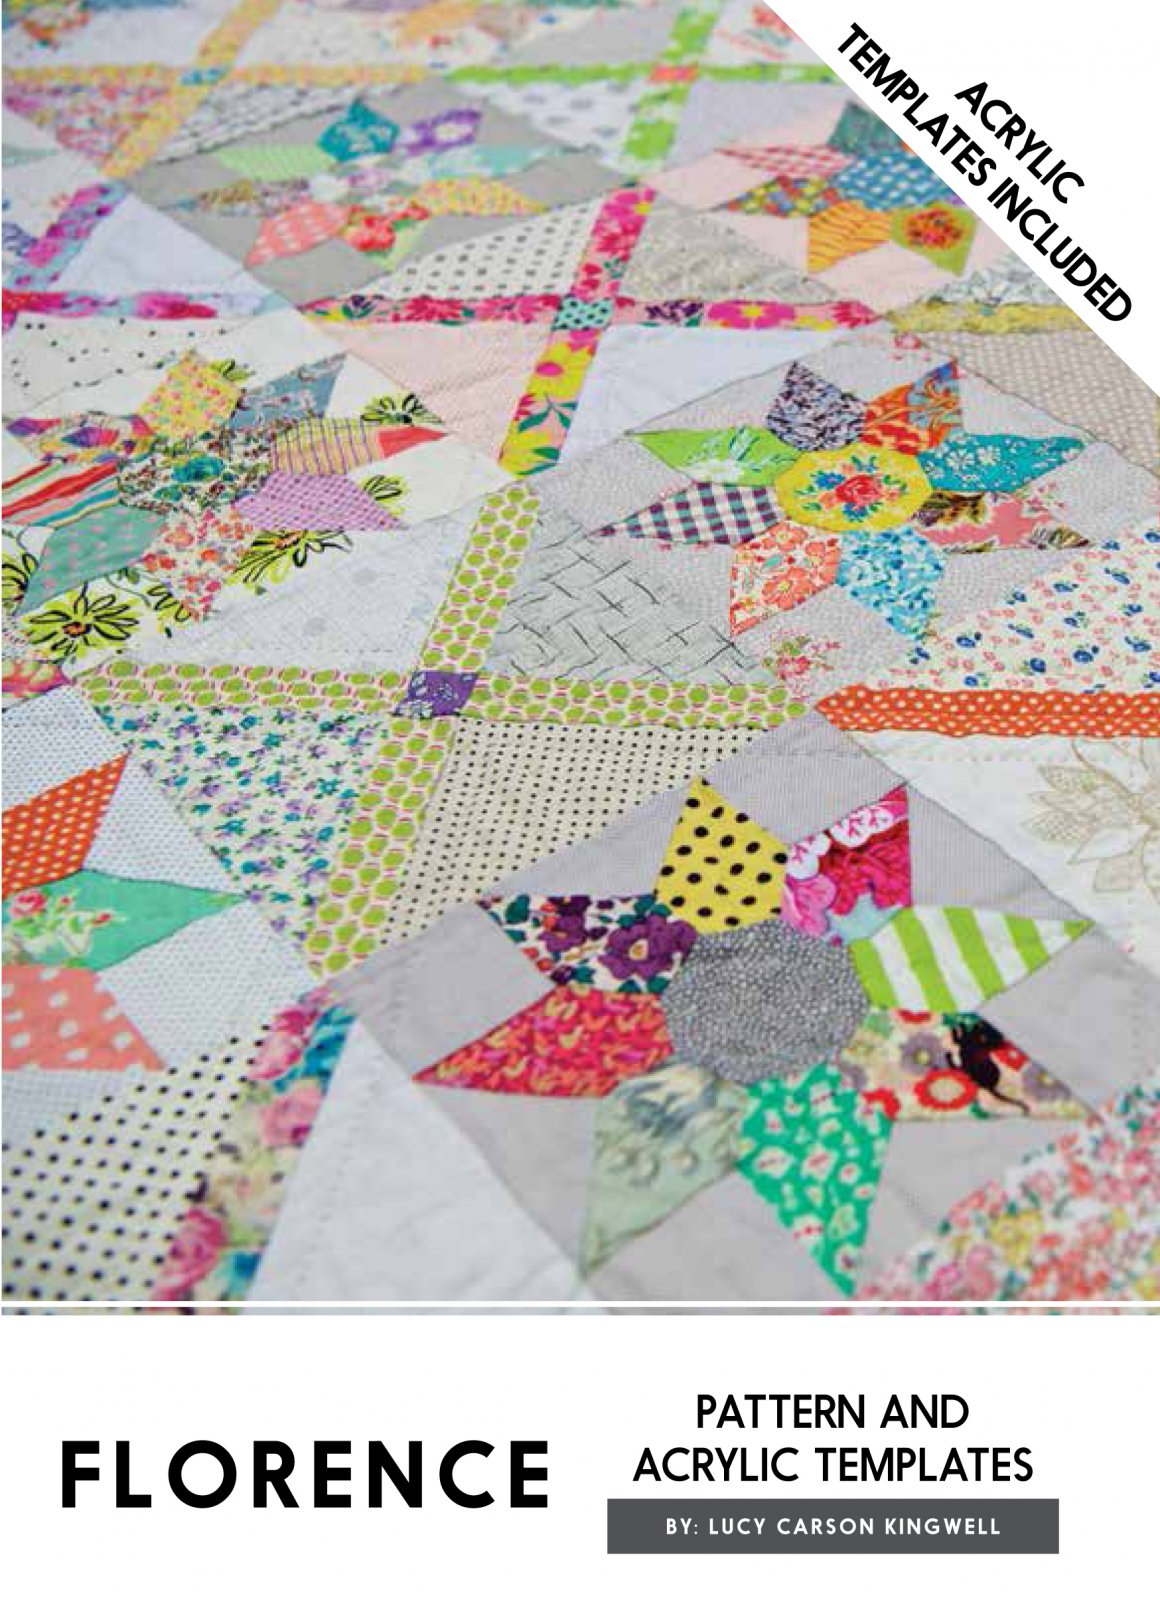 Florence Acrylic Templates And Pattern by Lucy Carson Kingwell for Jen Kingwell Designs